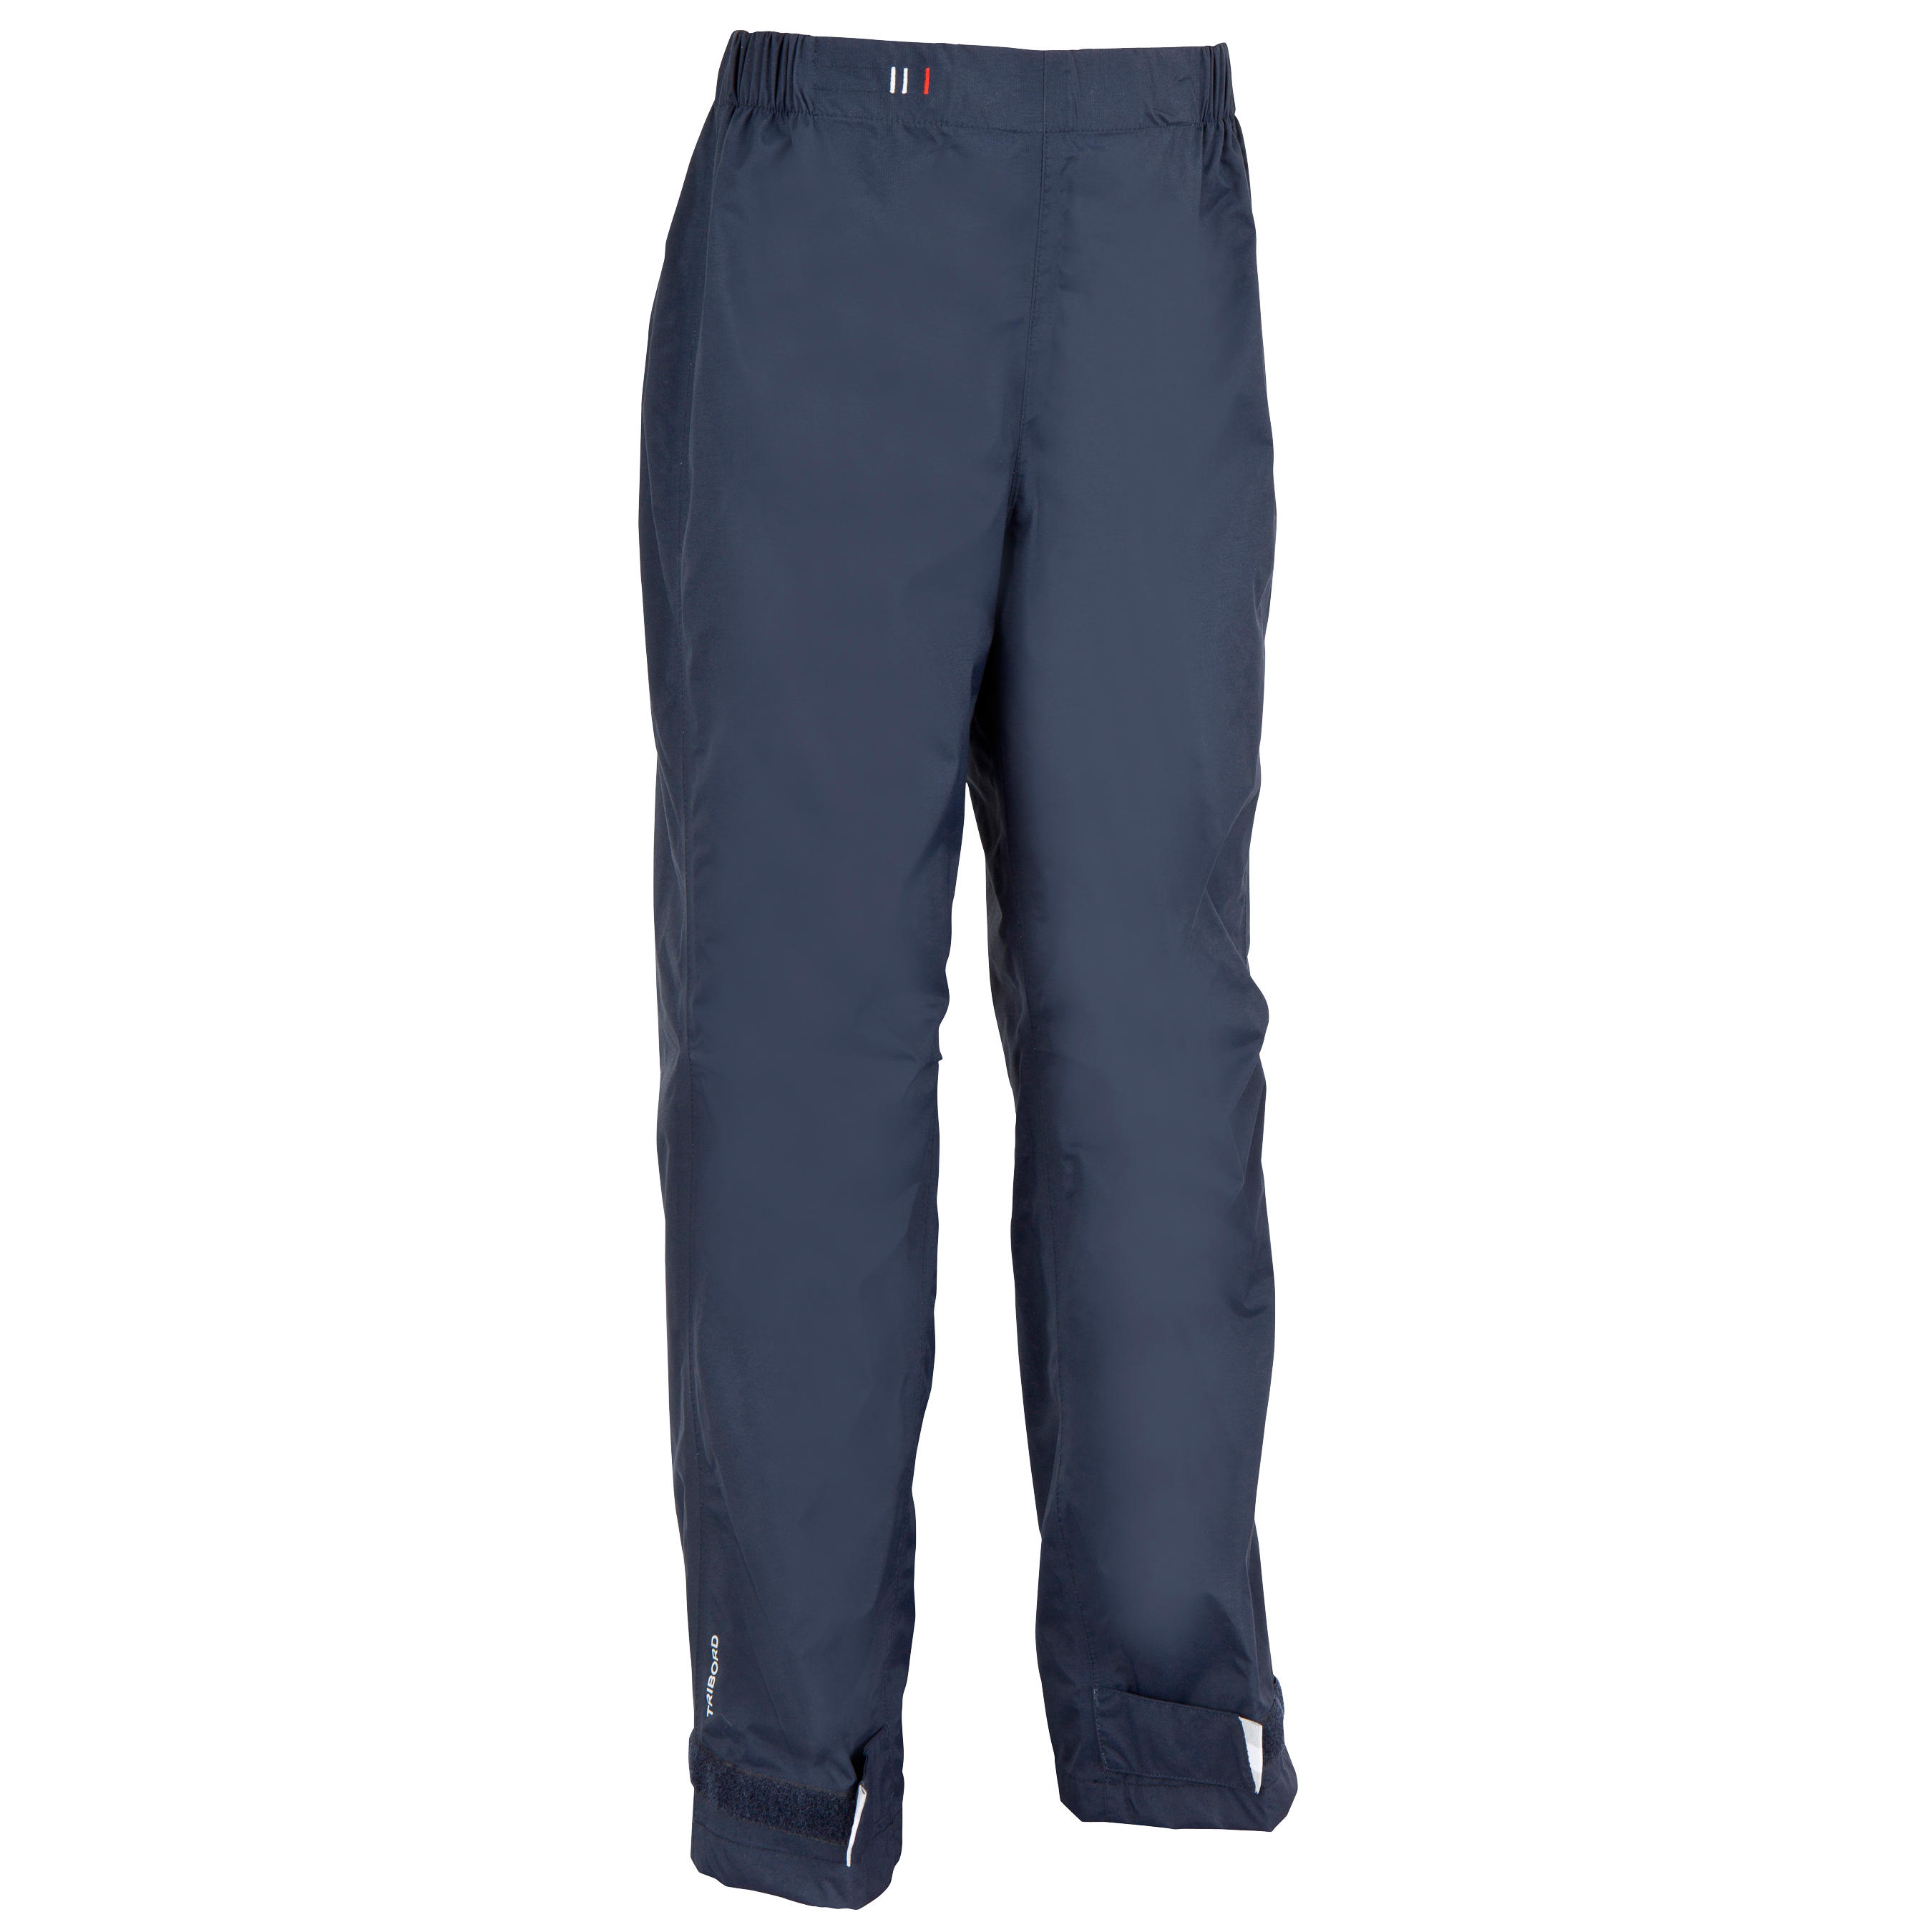 100 Children's Sailing Top Layer Pants - Dark Blue